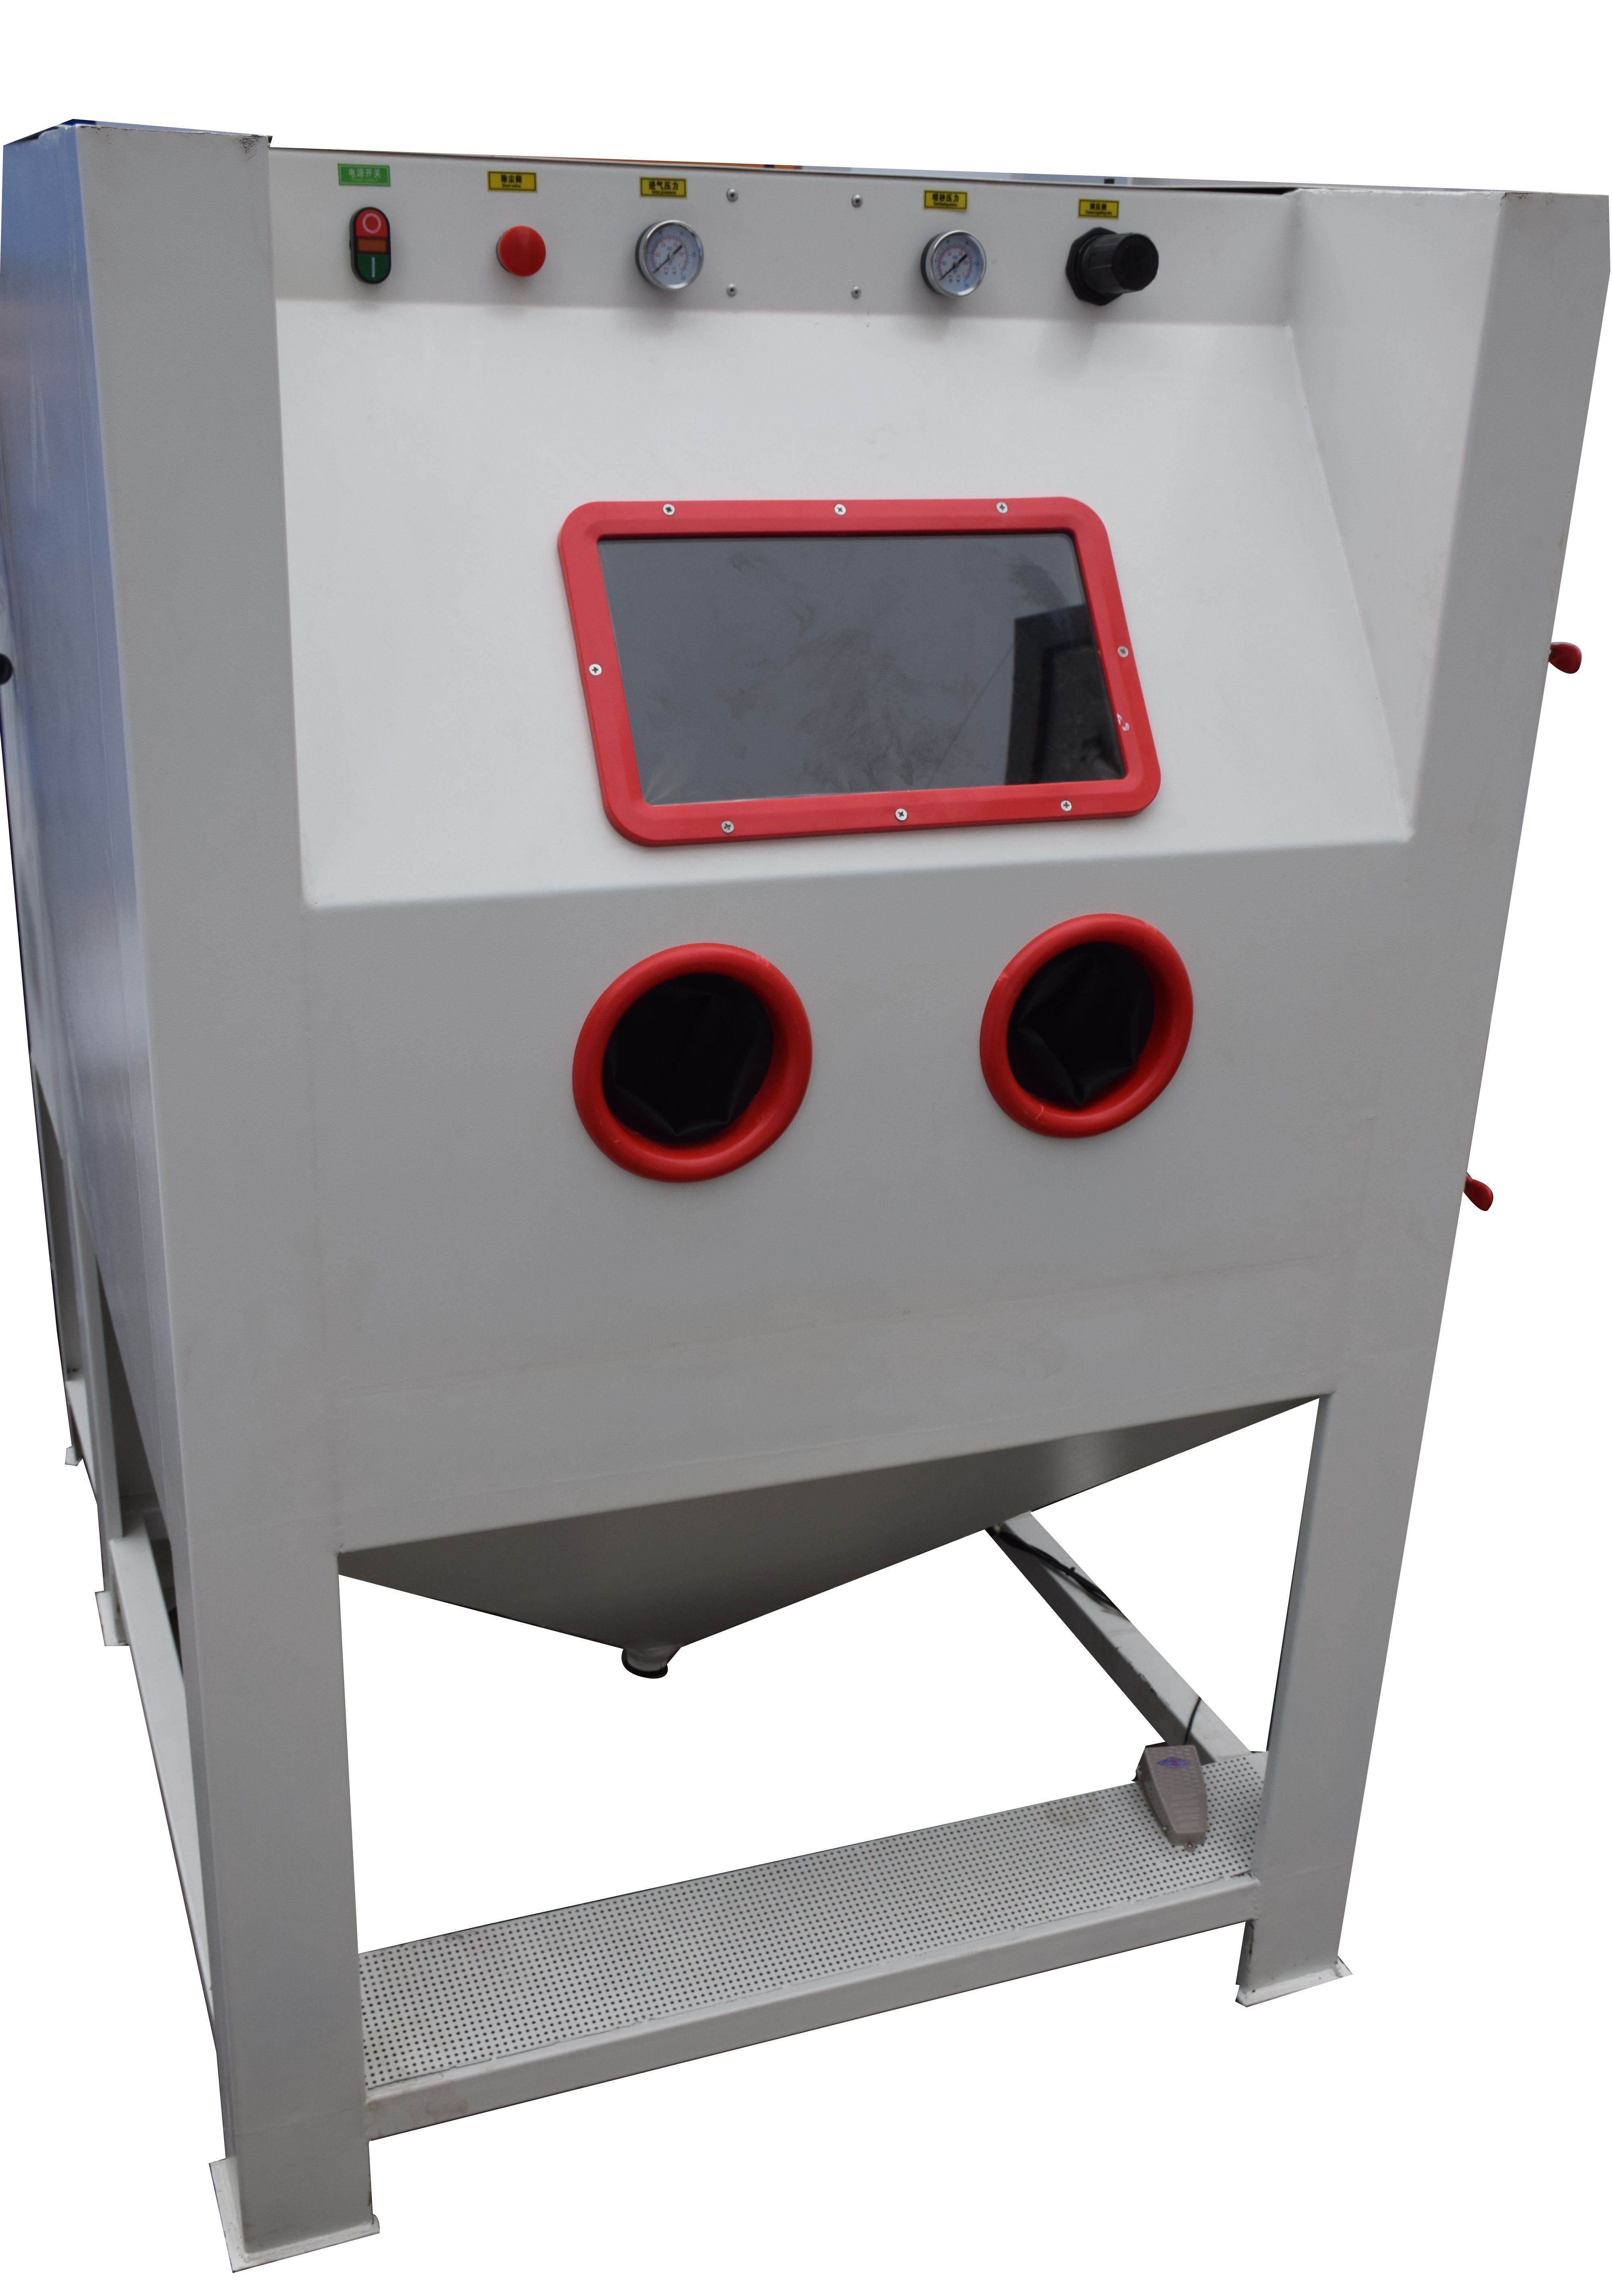 abrasive blast cabinet can use all kinds of medias such as aluminum